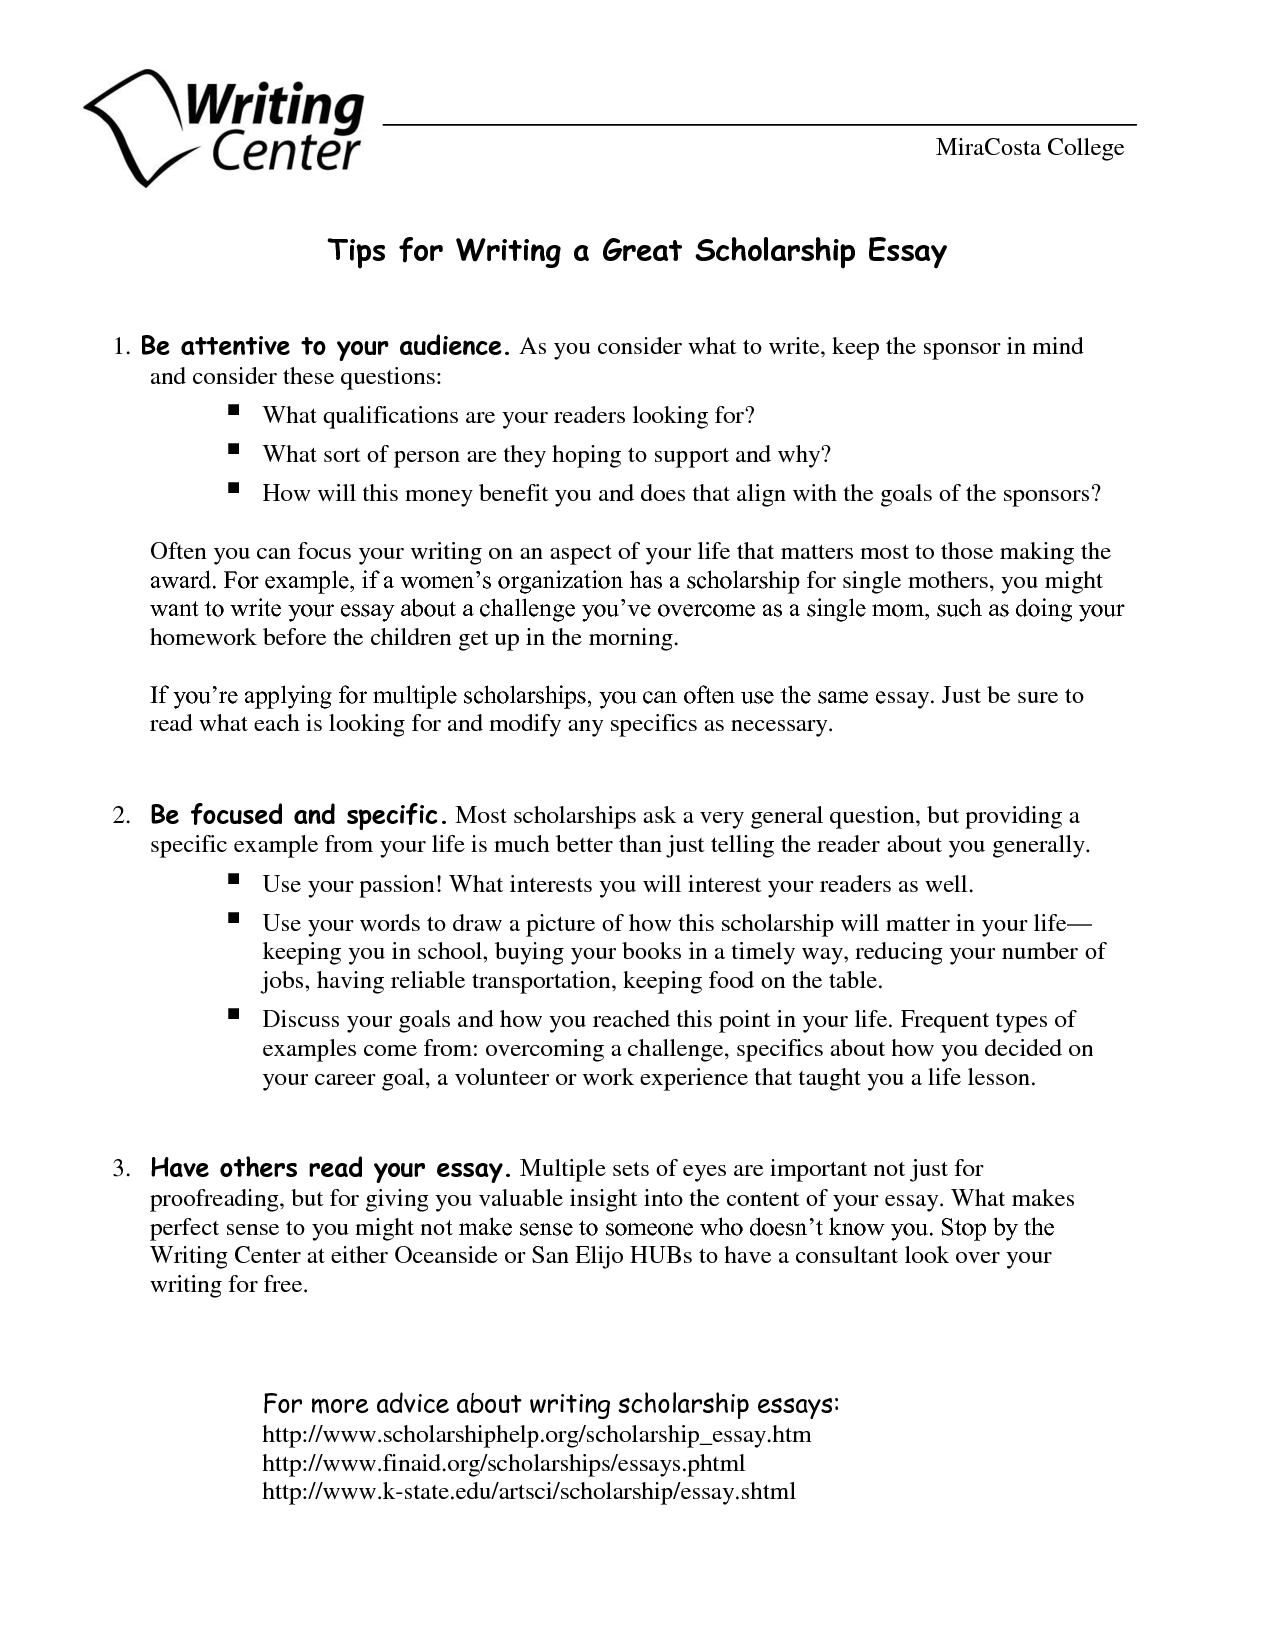 019 Application Essay Example Structure Format Free Letter Templates Online Jagsa Us Sample Scholarship Engineering N8cud Nursing Mba Excellent Apply Texas Prompts 2019 College Help Guidelines Full